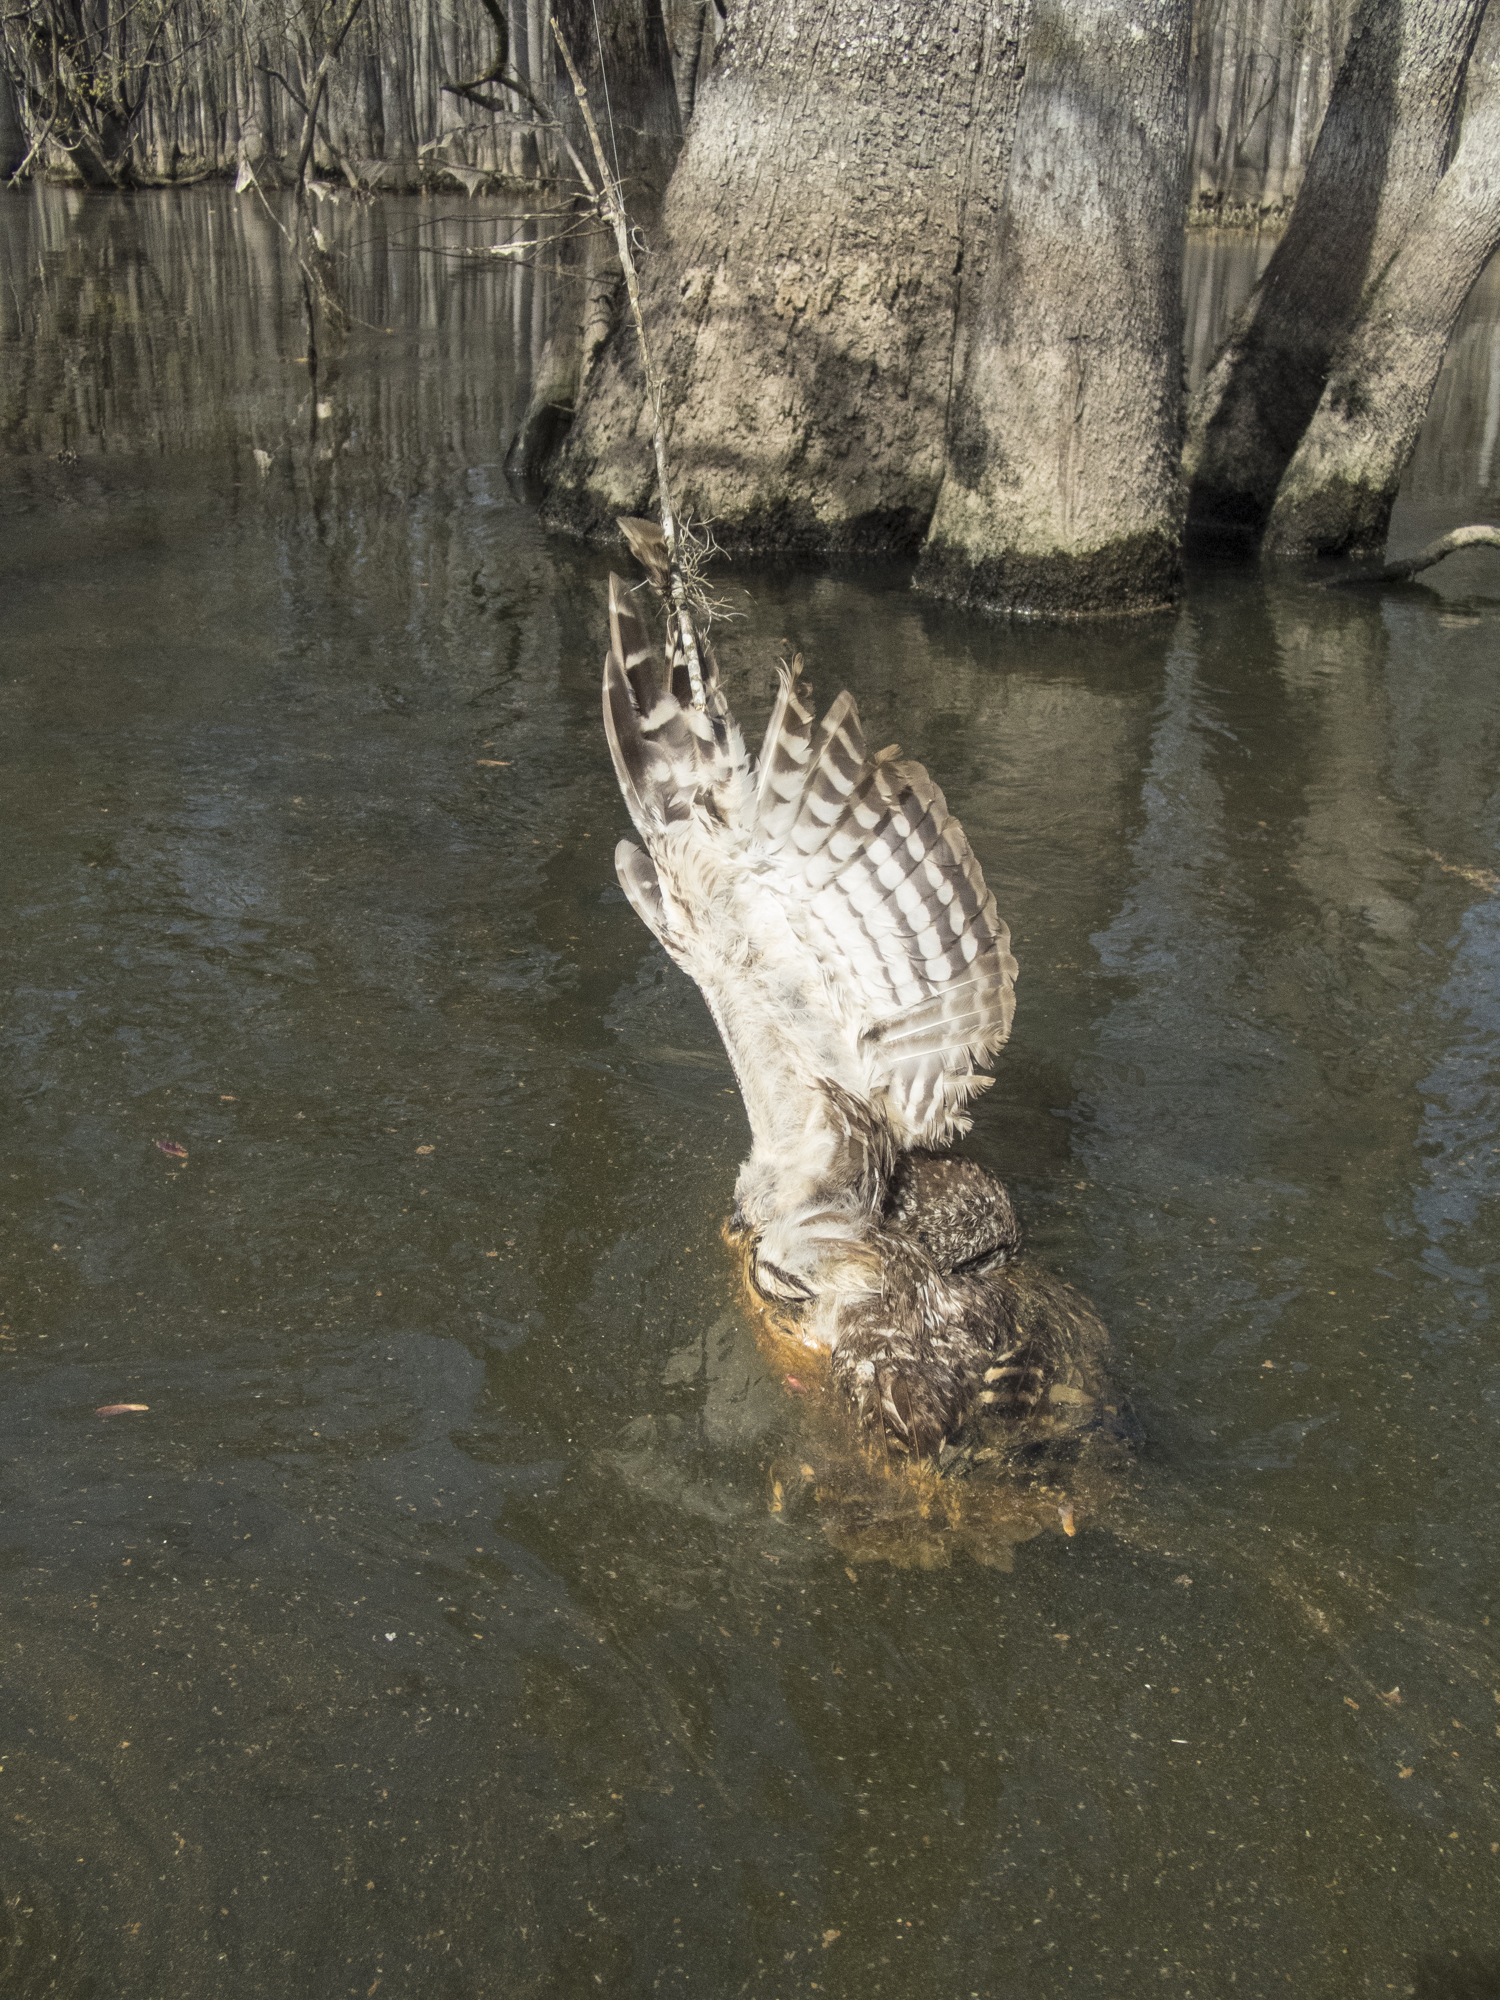 barred owl carcass tied in fishing line